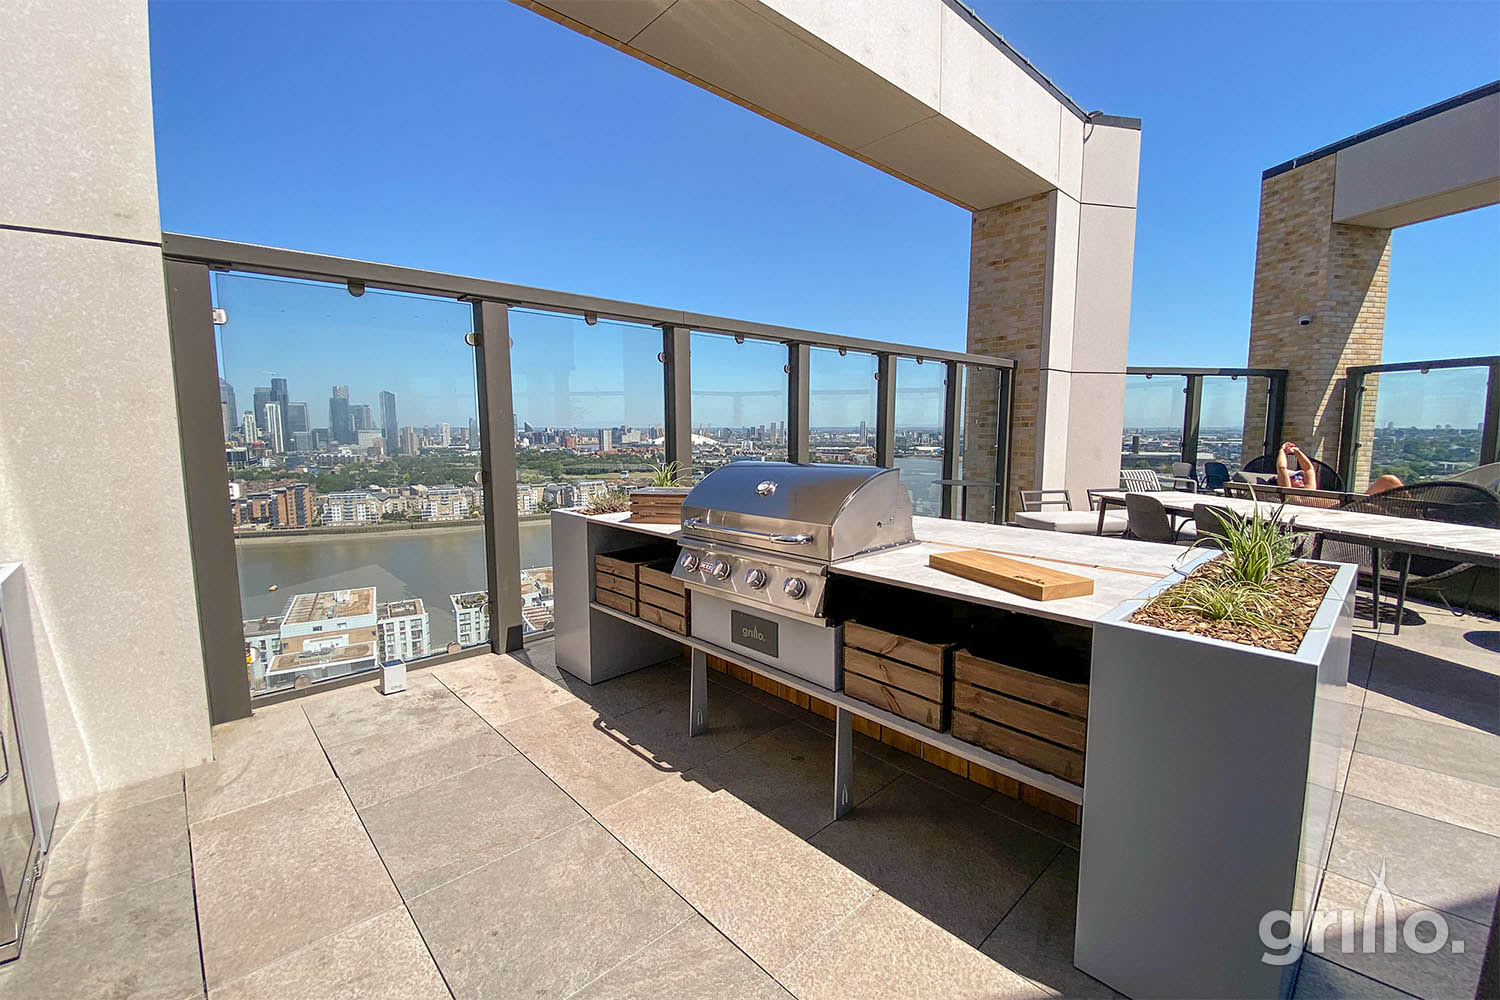 roof terrace Grillo kitchen island Cadac, planters, storage crates, Thames